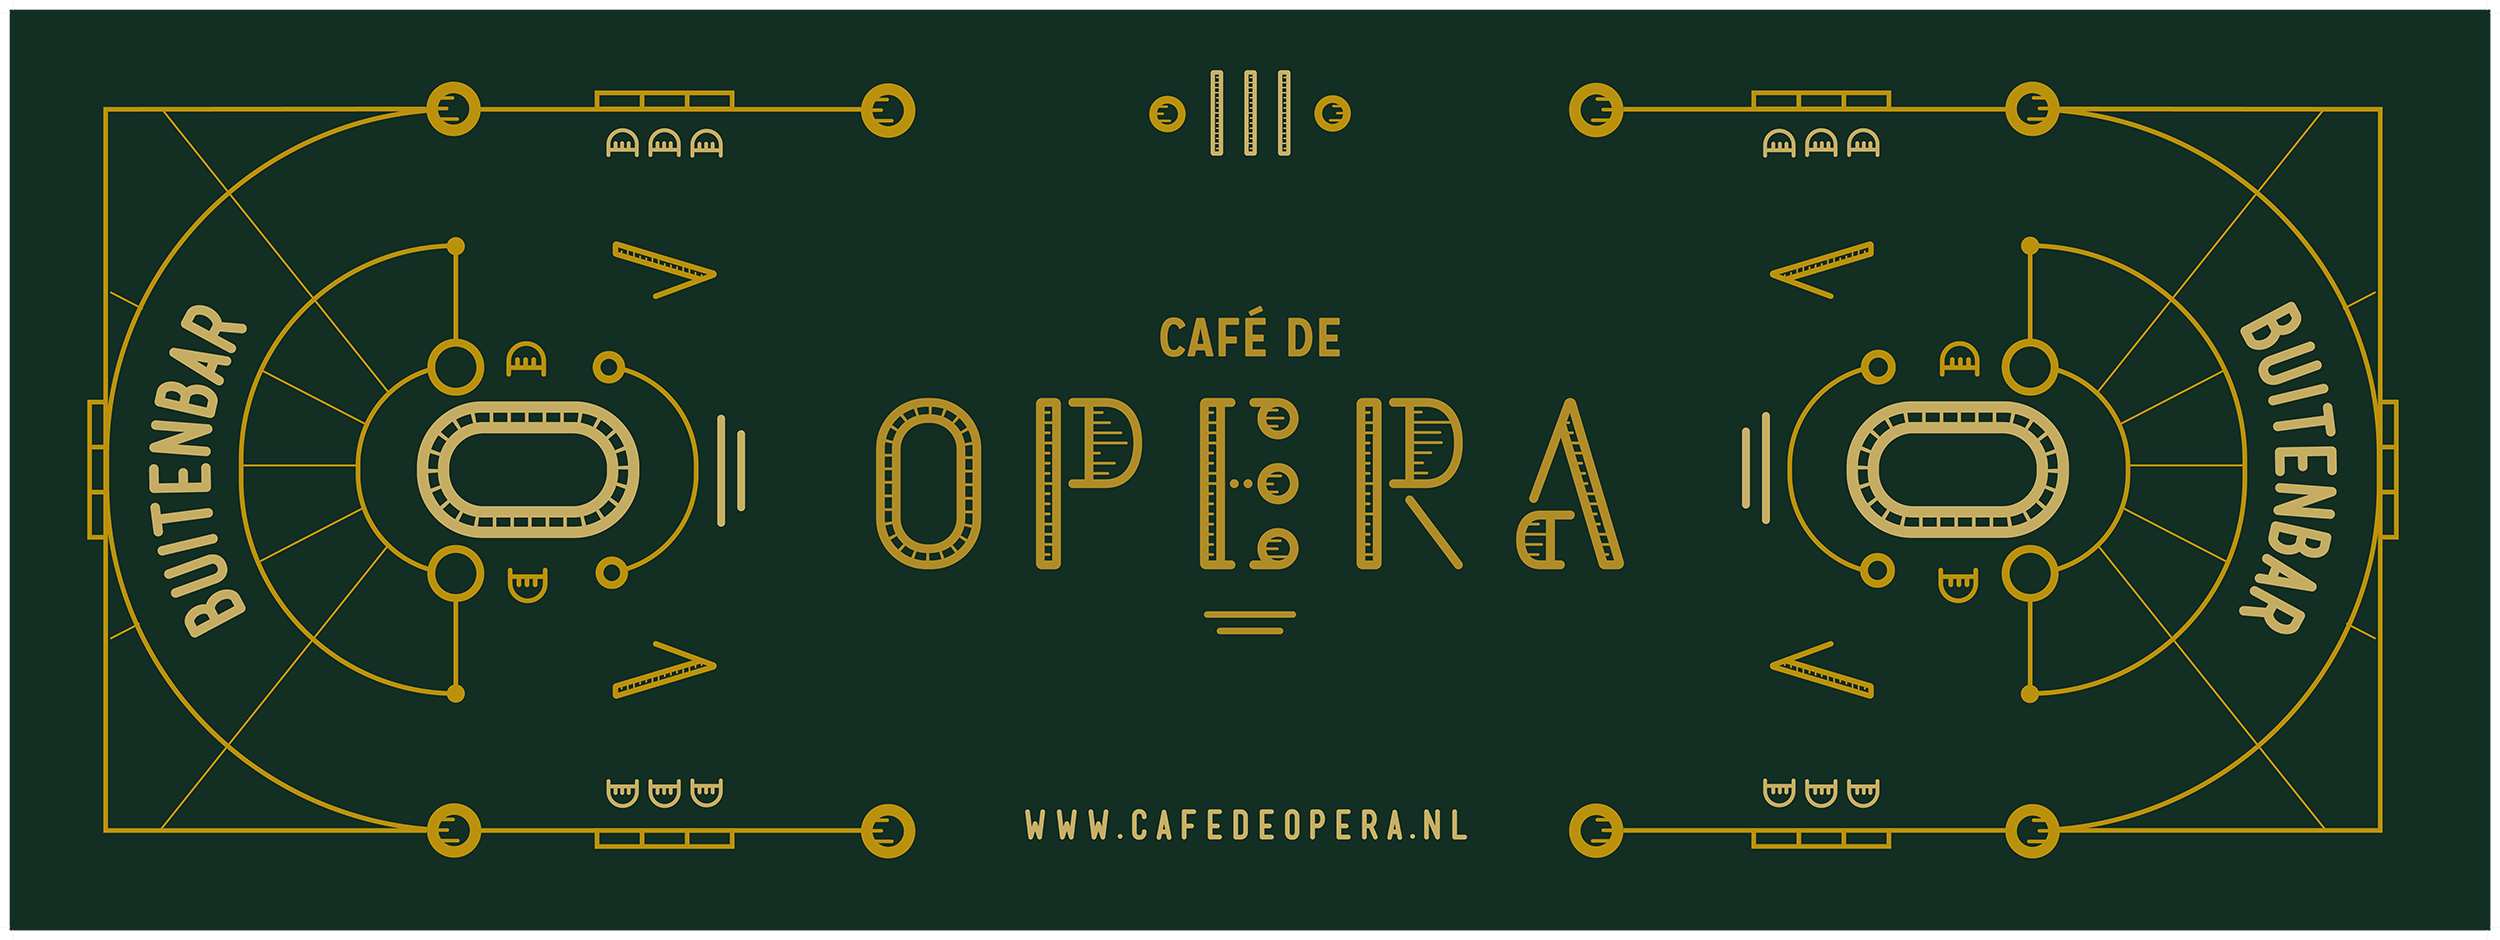 As you were - Café De Opera - Drukwerk, banner